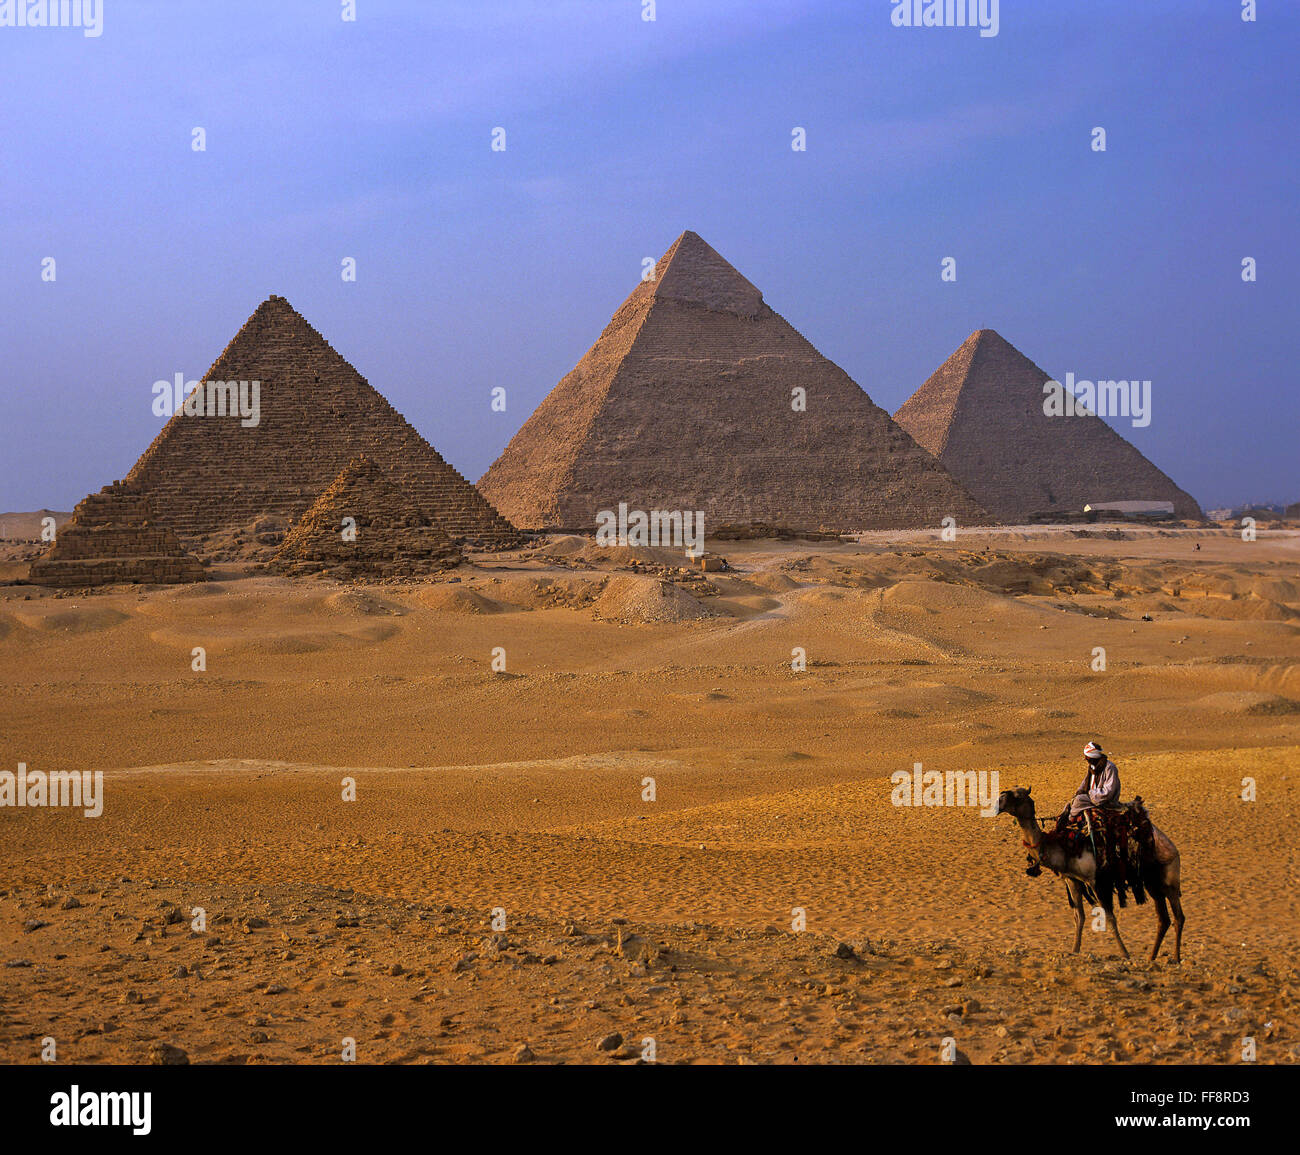 Camel and pyramids, Giza plateau, Cairo, Egypt, Africa - Stock Image